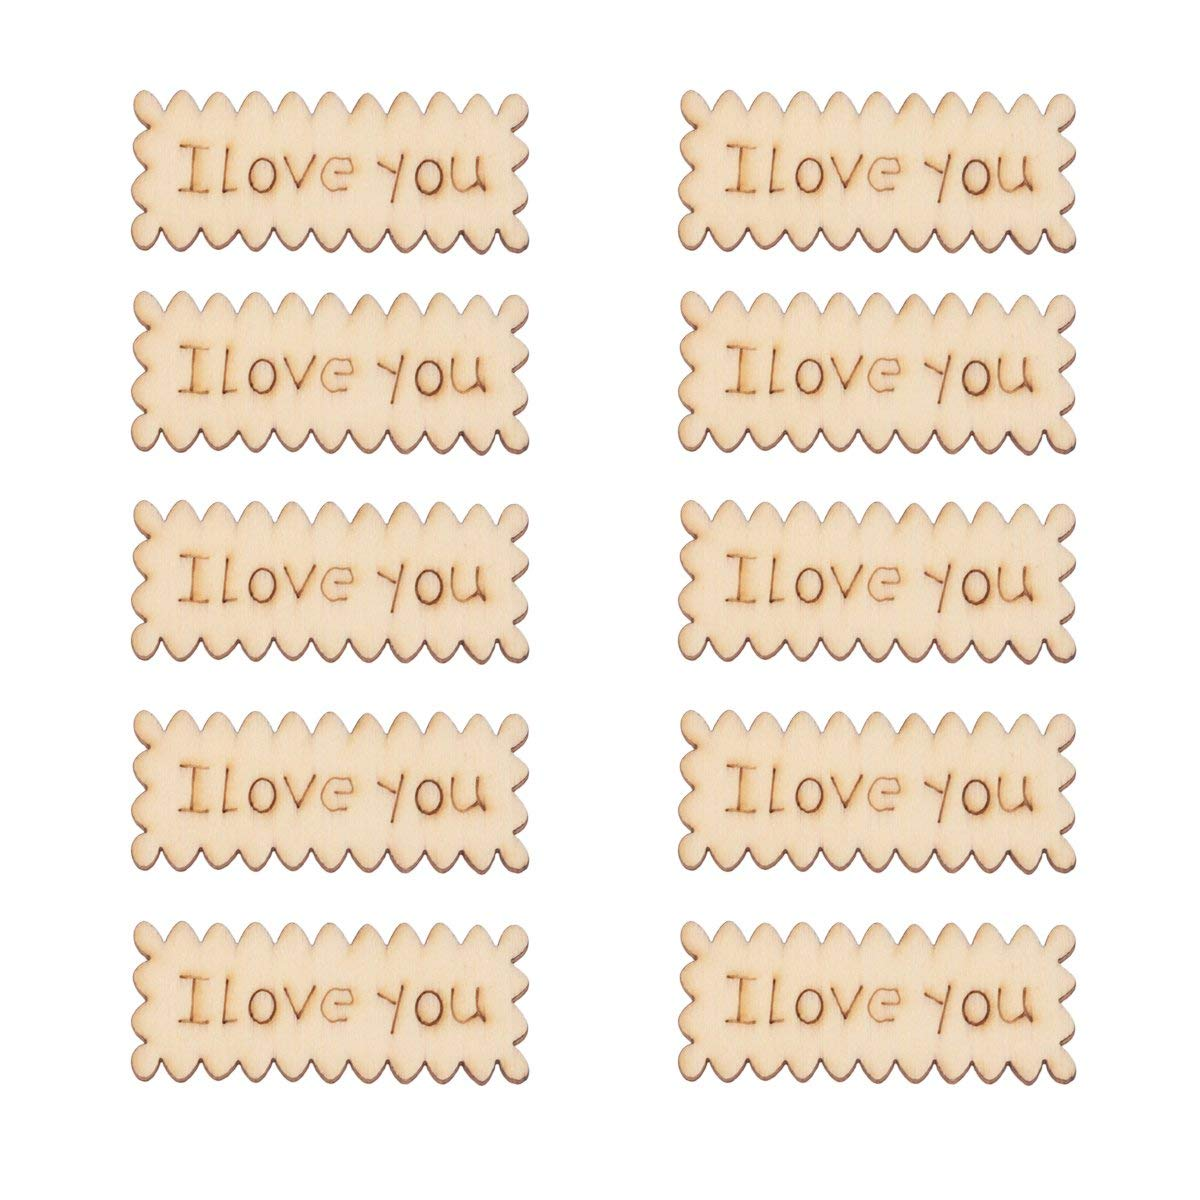 LUOEM 10PCS Wooden Craft Embellishment I Love You Cutout Veneers Slices For Patchwork DIY Crafting Decoration Christmas Tree Pendants Hanging Ornaments Wood Tag For Wedding Party